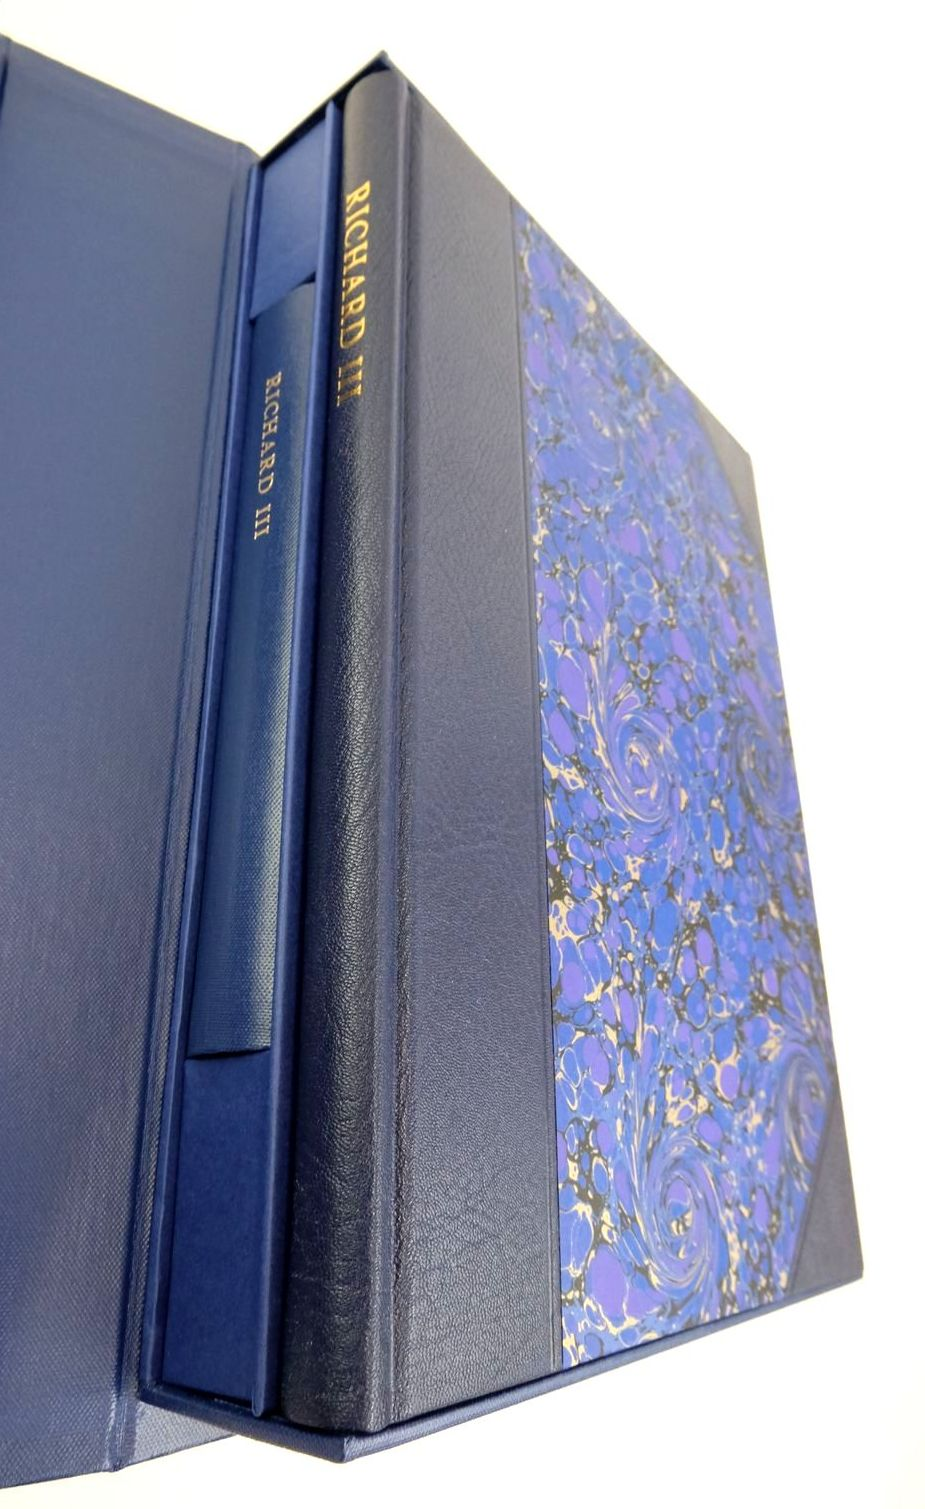 Photo of RICHARD III (THE LETTERPRESS SHAKESPEARE) written by Shakespeare, William Jowett, John published by Folio Society (STOCK CODE: 1822195)  for sale by Stella & Rose's Books